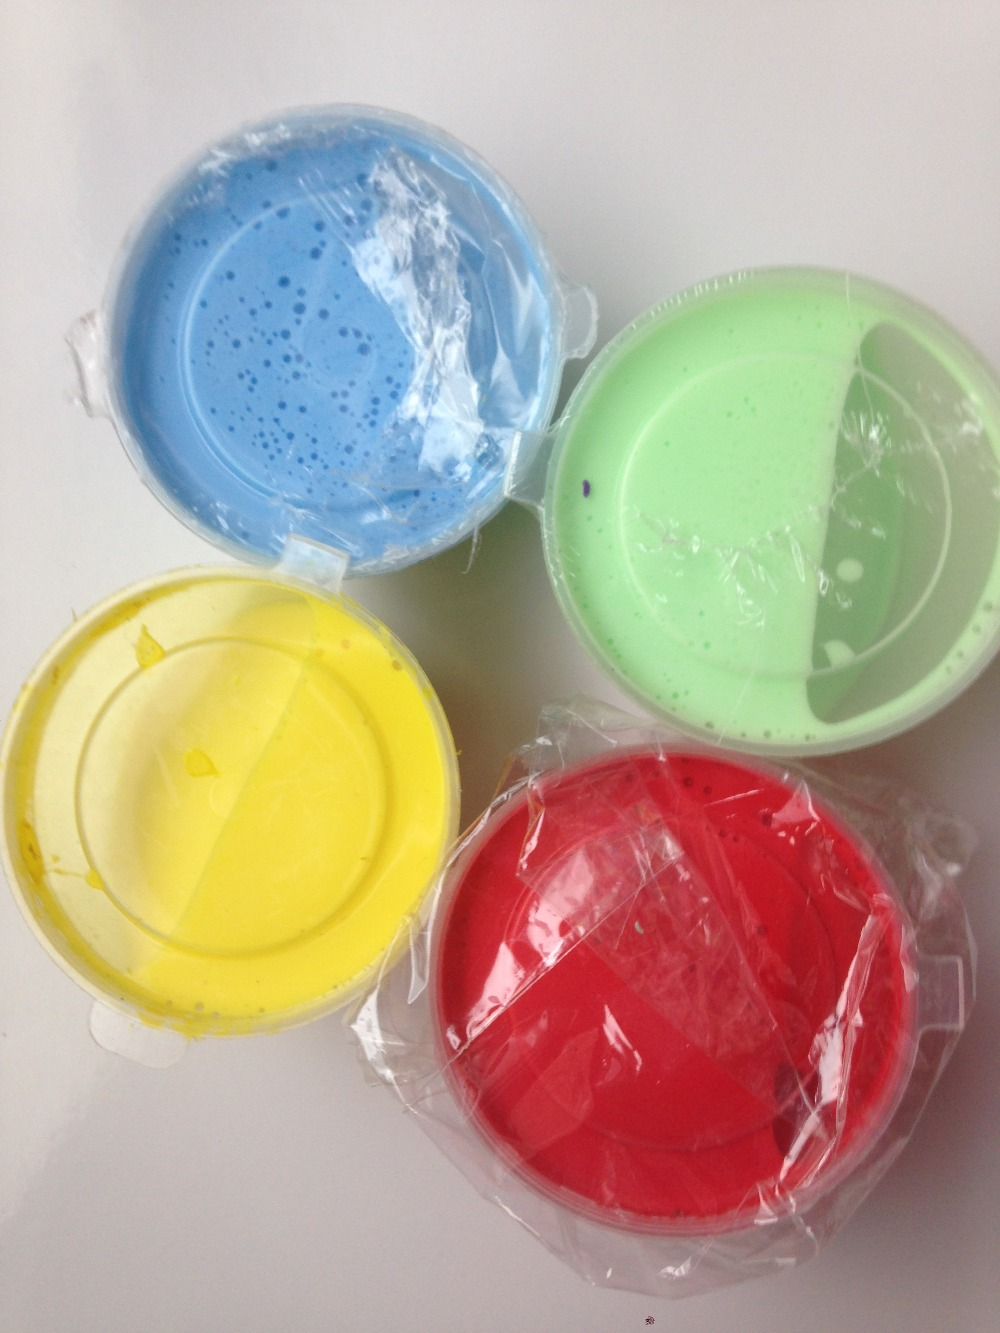 40box 40g/box Soft butter slime form crystal soil squishy lab slime toy slime putty clear clay slime Whipped cream rubber mud